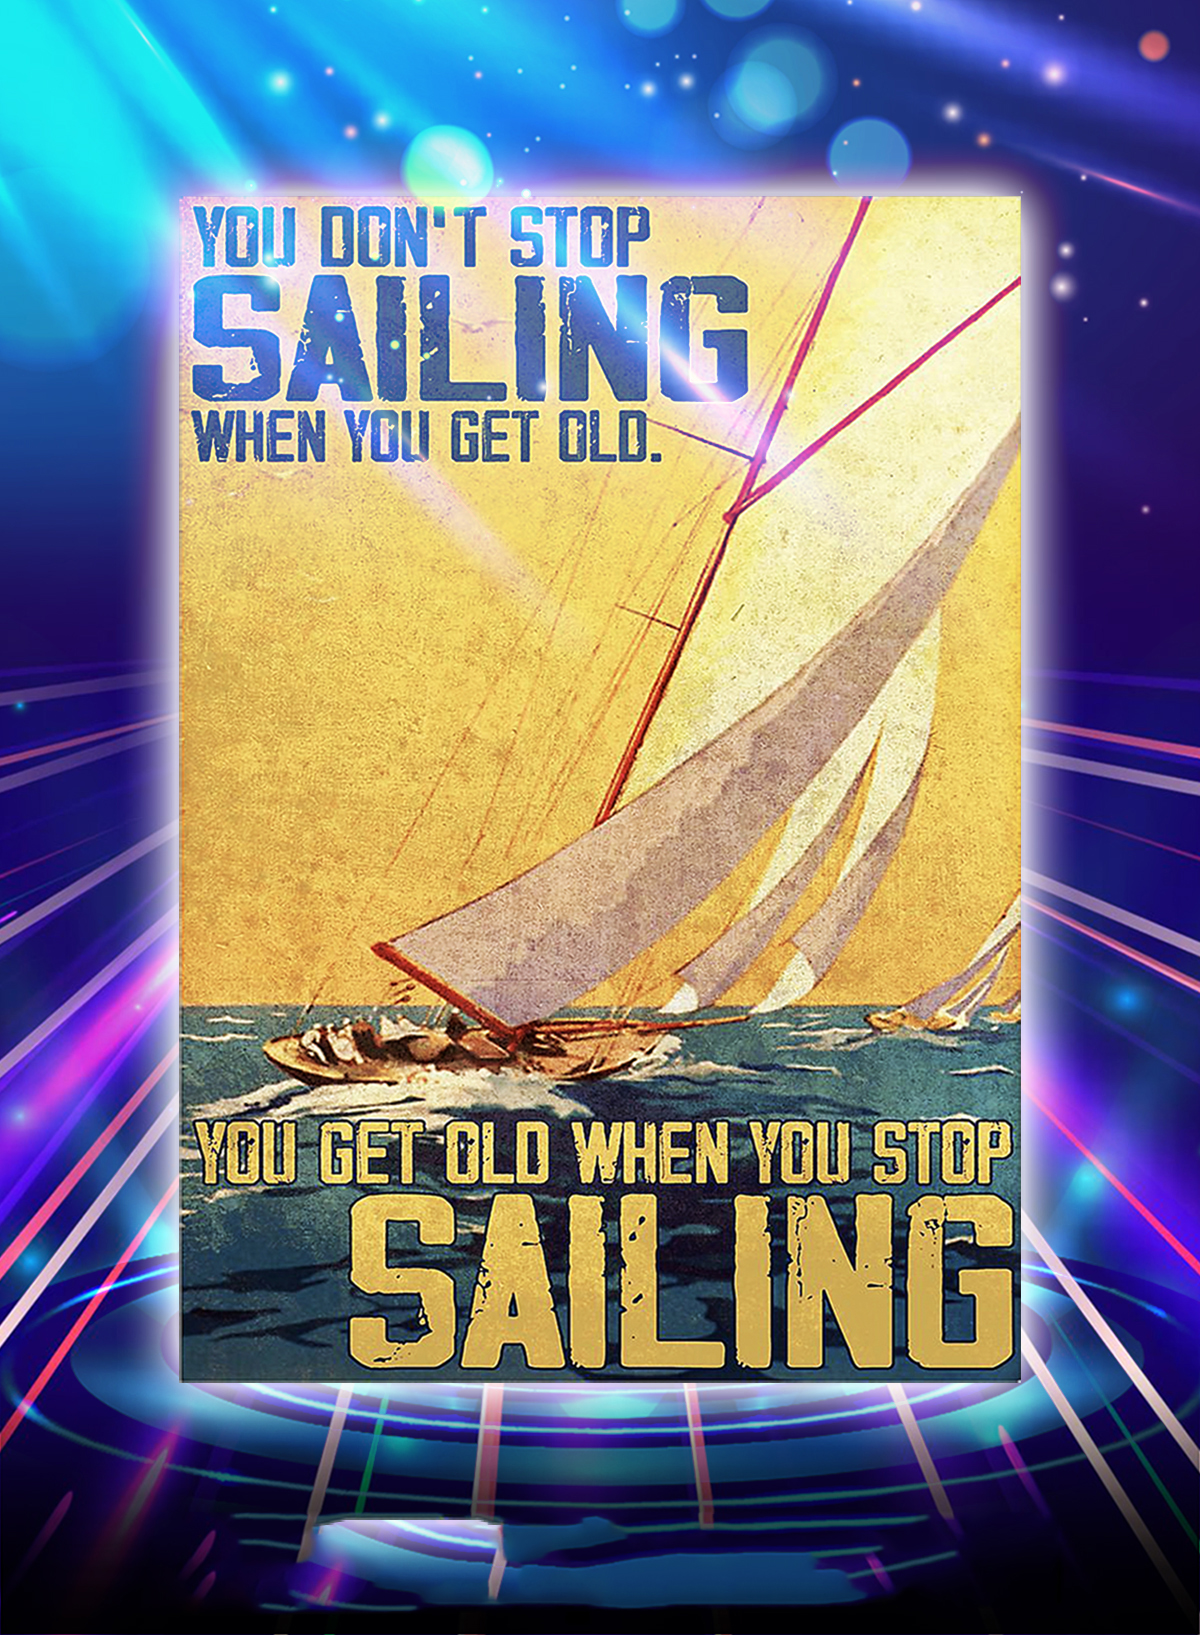 You don't stop sailing when you get old you get old when you stop sailing poster - A1